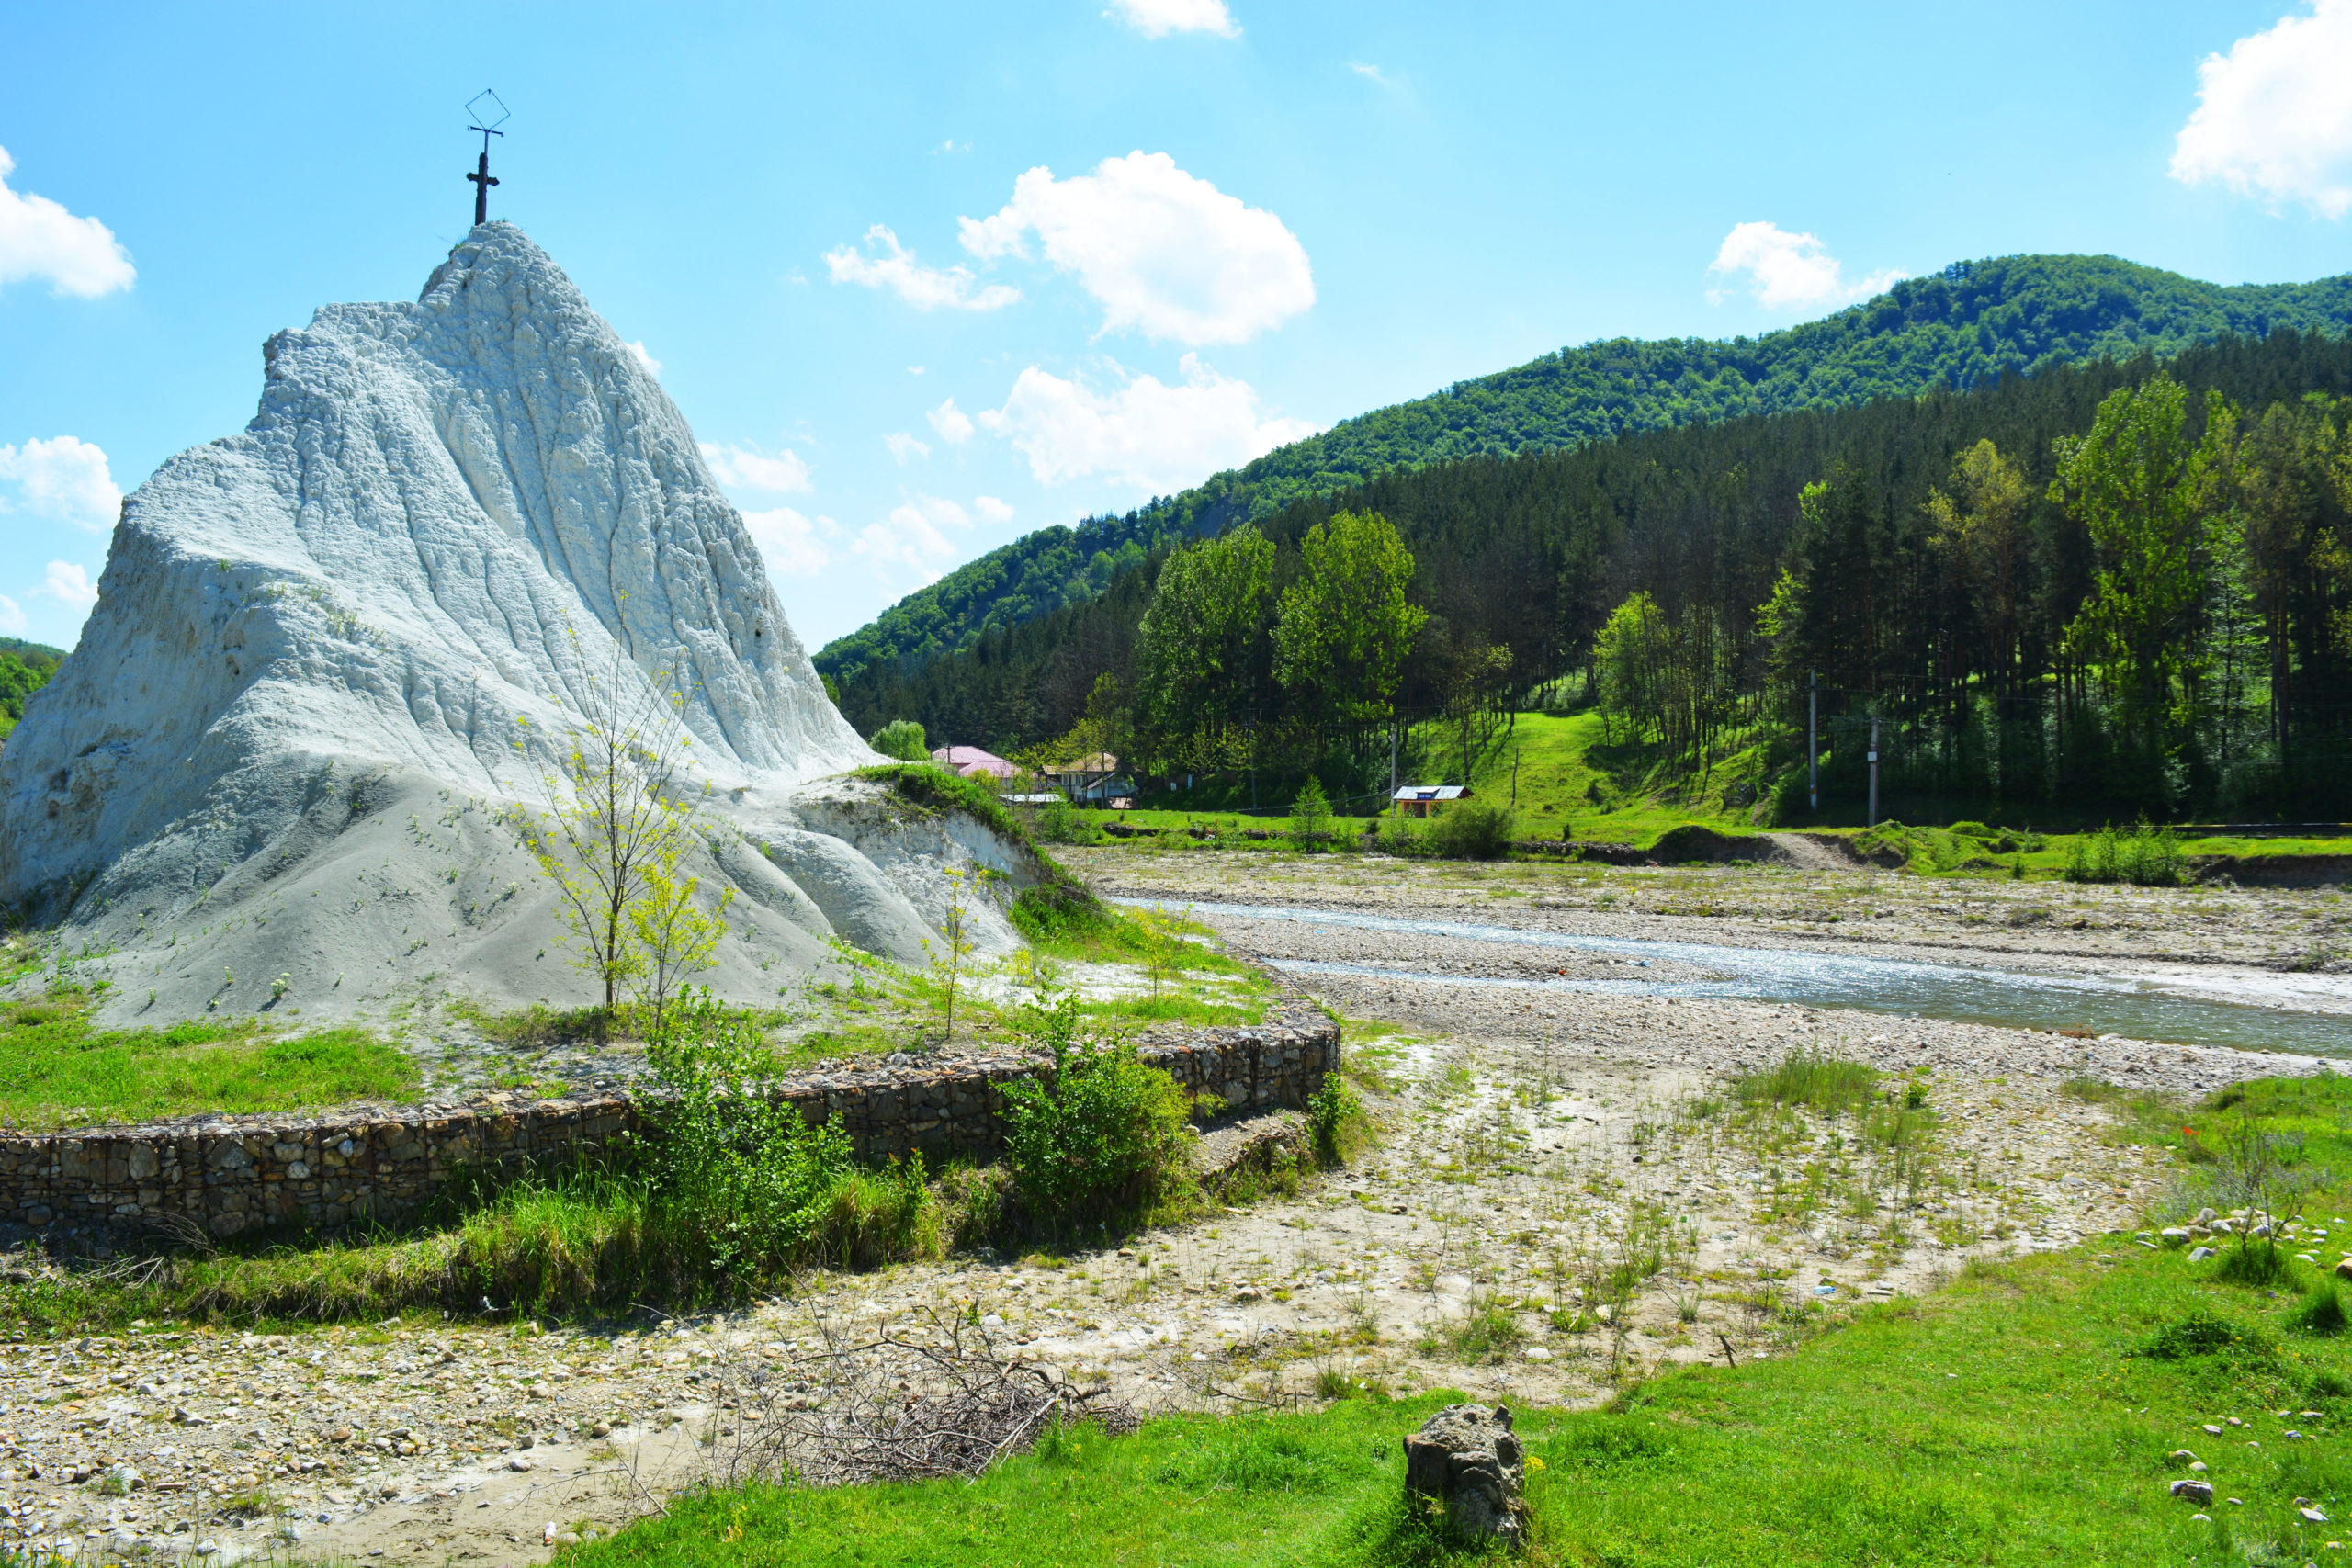 White Rock of Grunj, Buzau